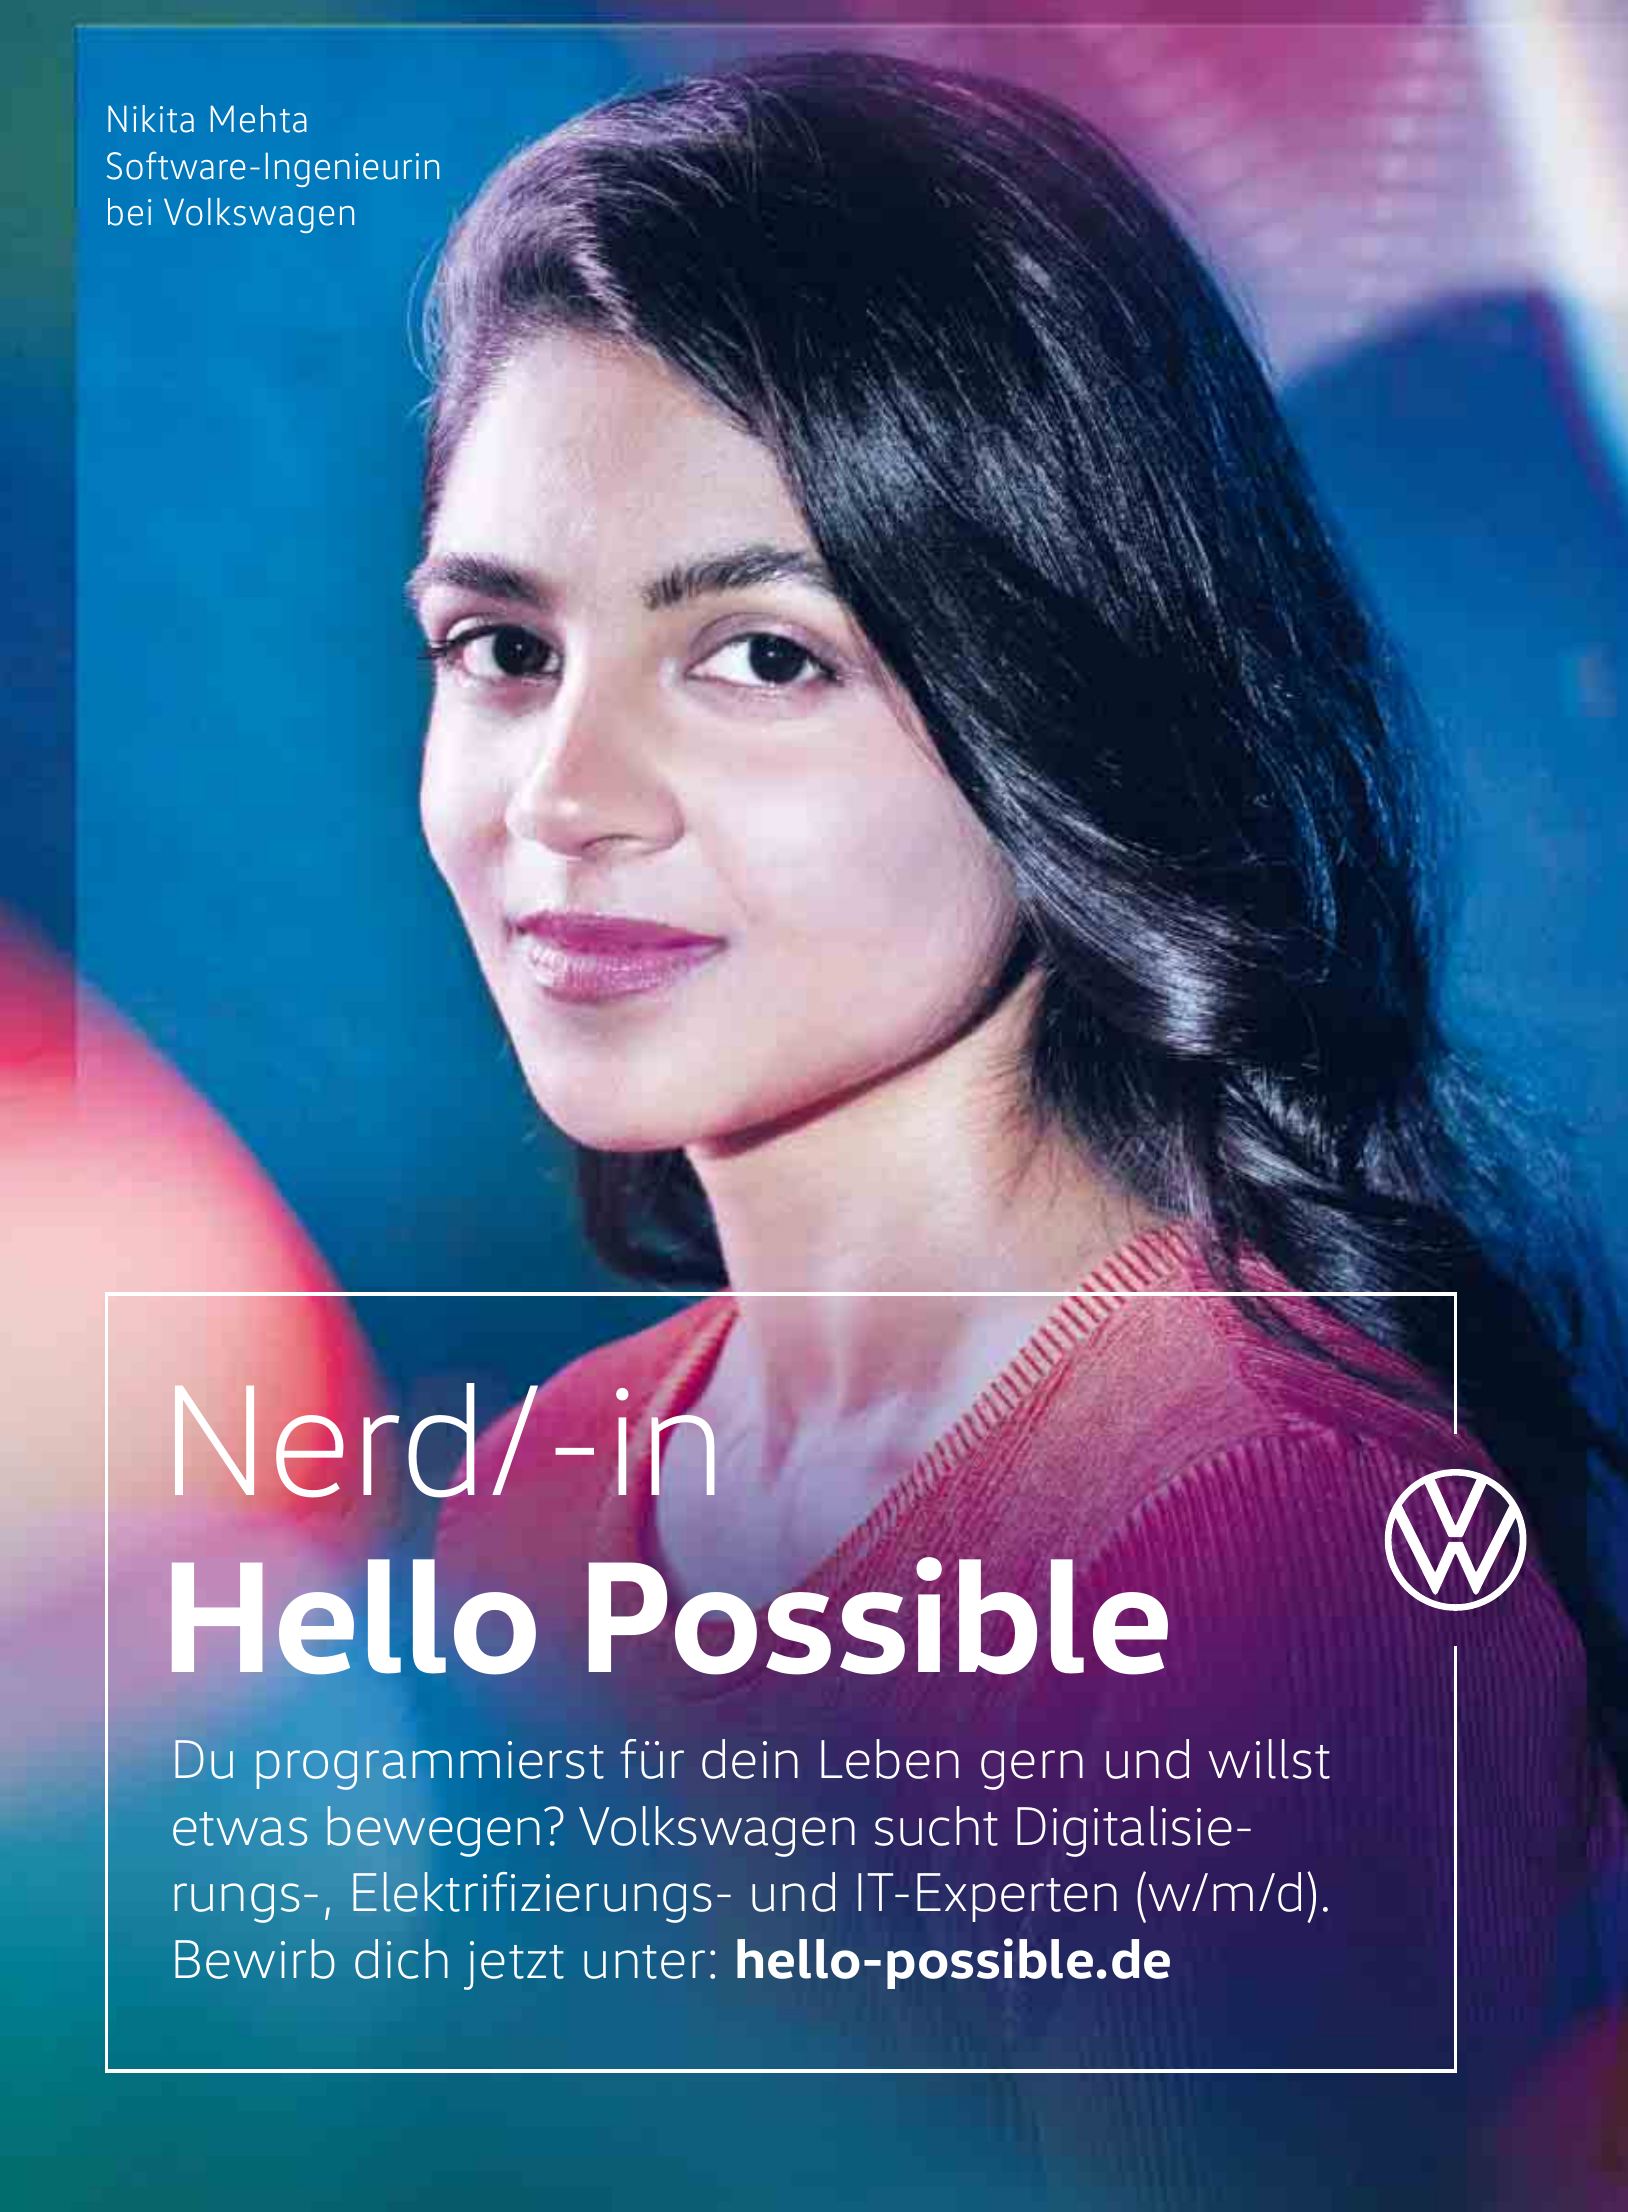 Volkswagen: Nerd/-in Hello Possible